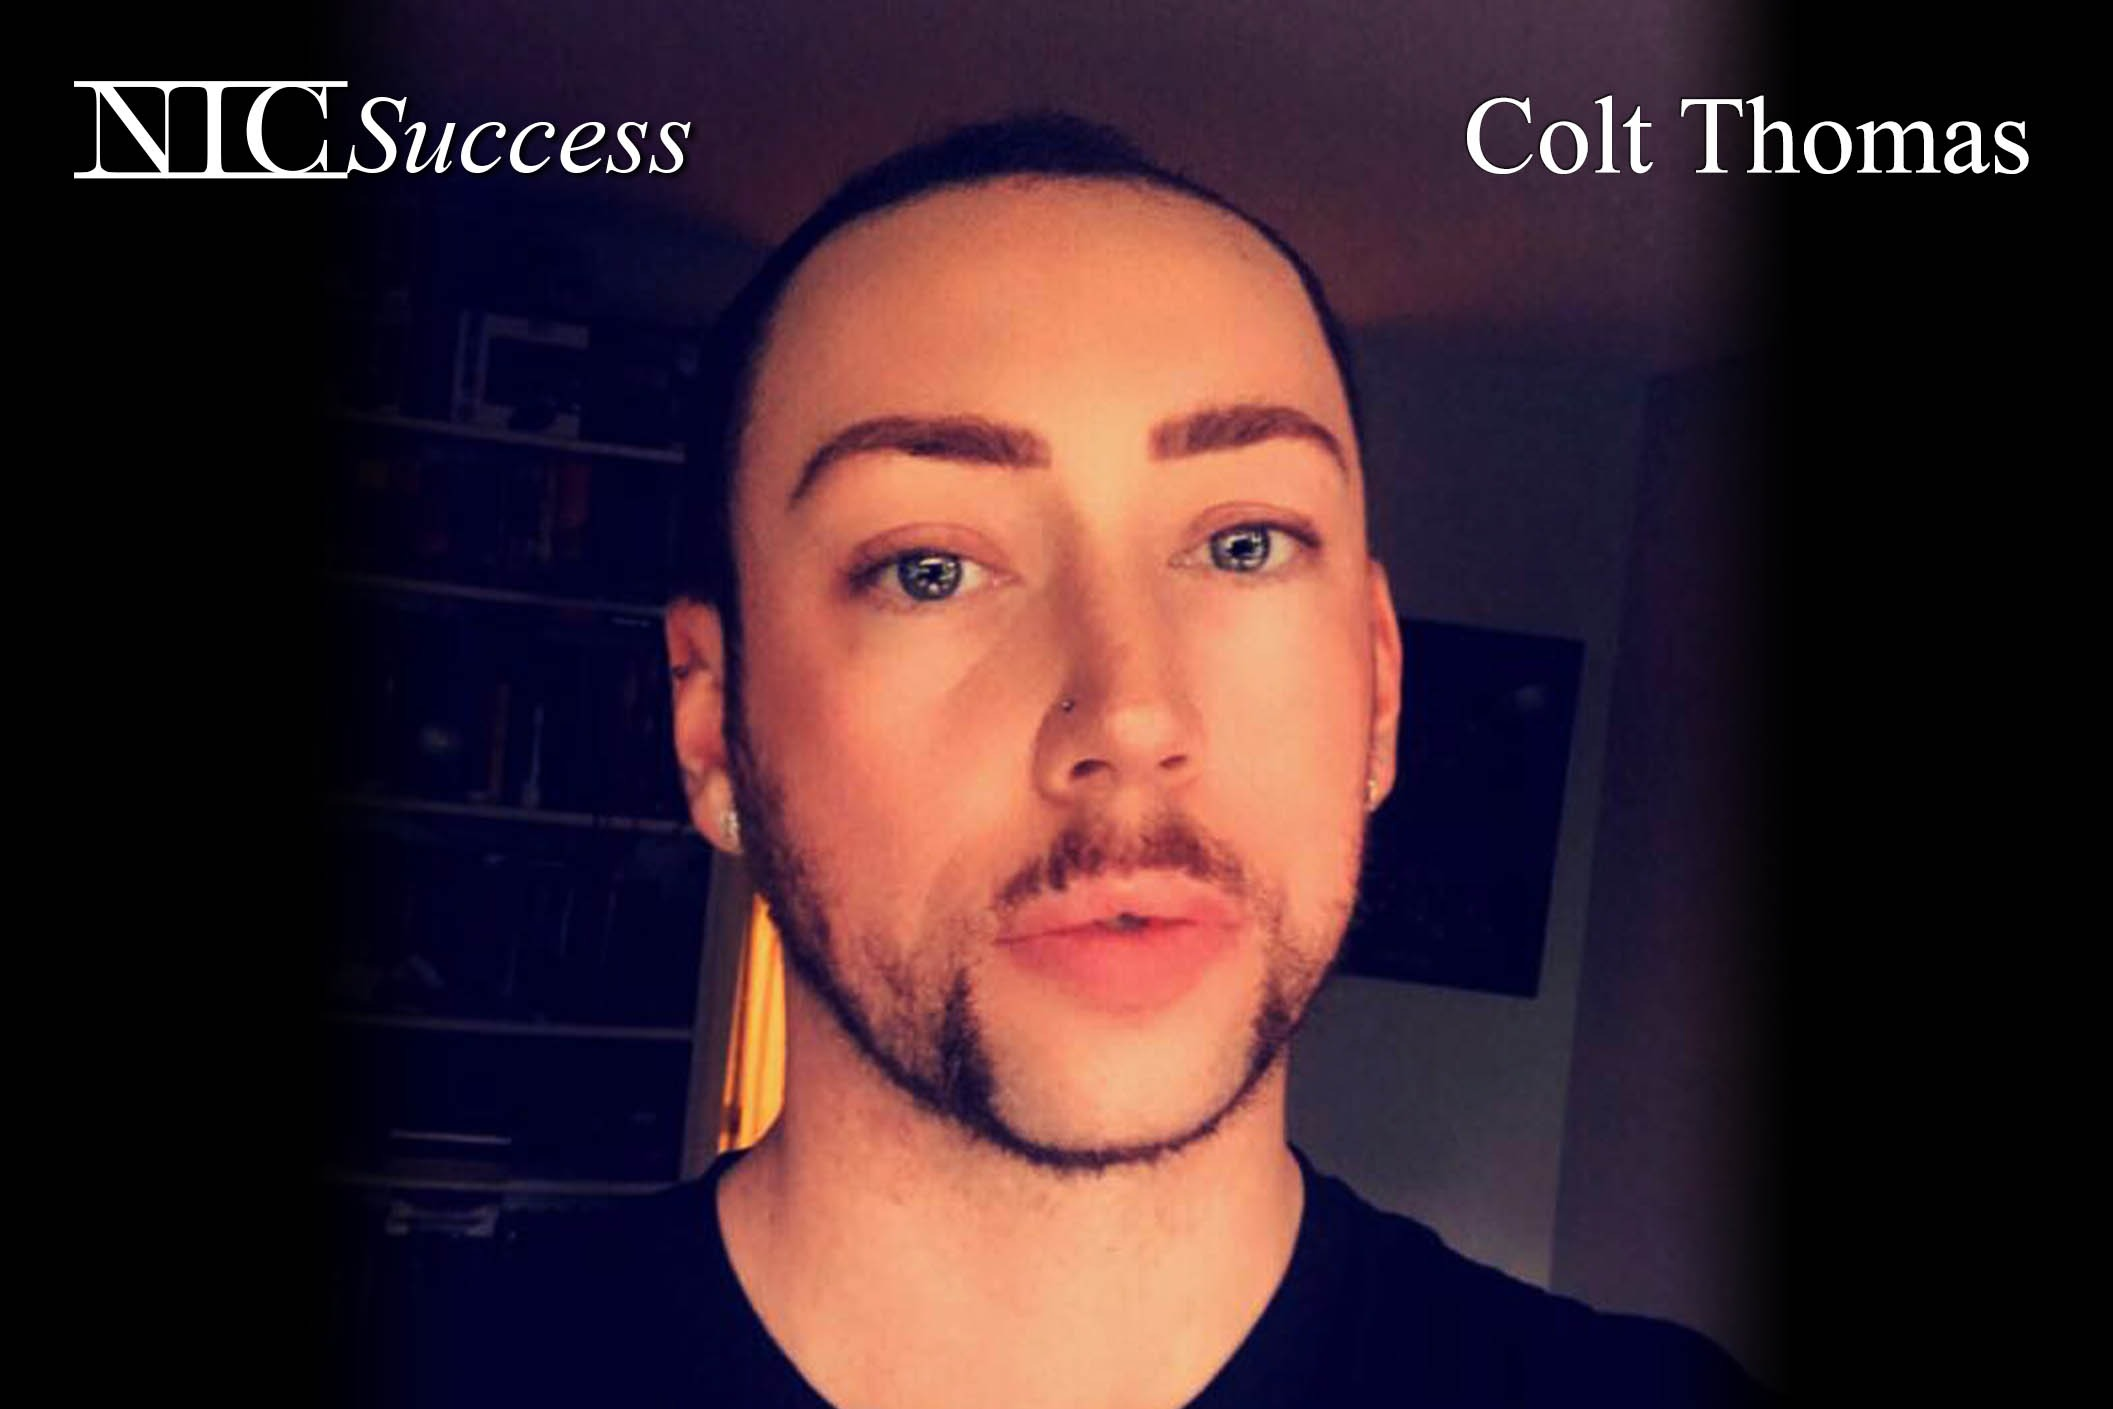 Colt Thomas is an ongoing success!